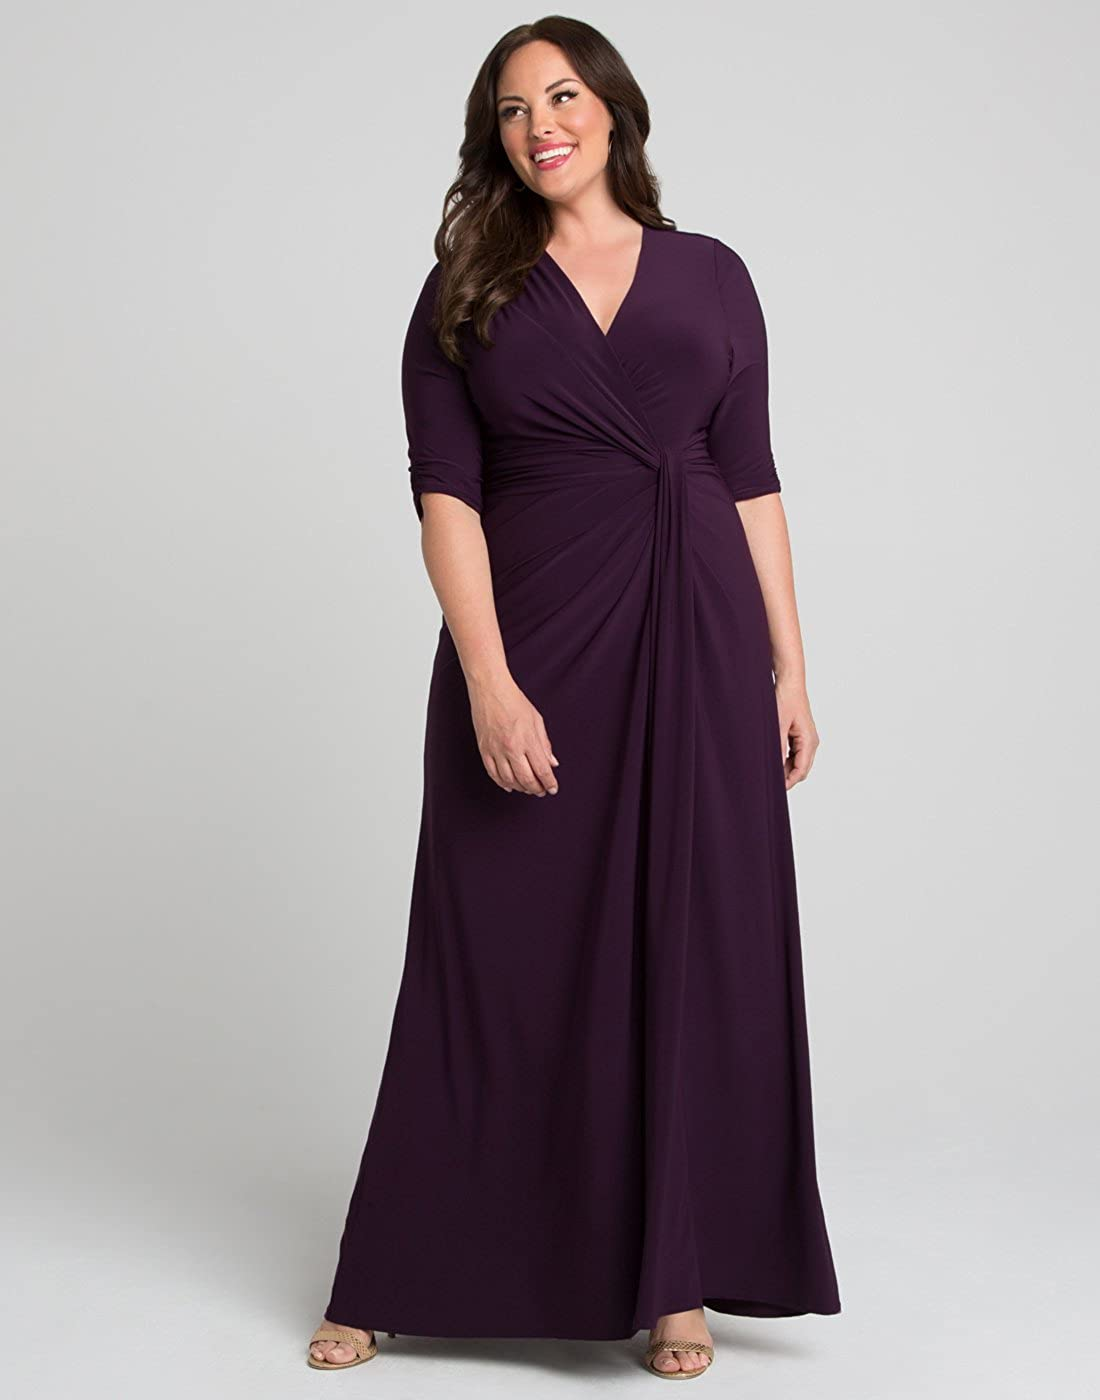 94c2f660222 Kiyonna Women s Plus Size Romanced by Moonlight Gown at Amazon Women s  Clothing store